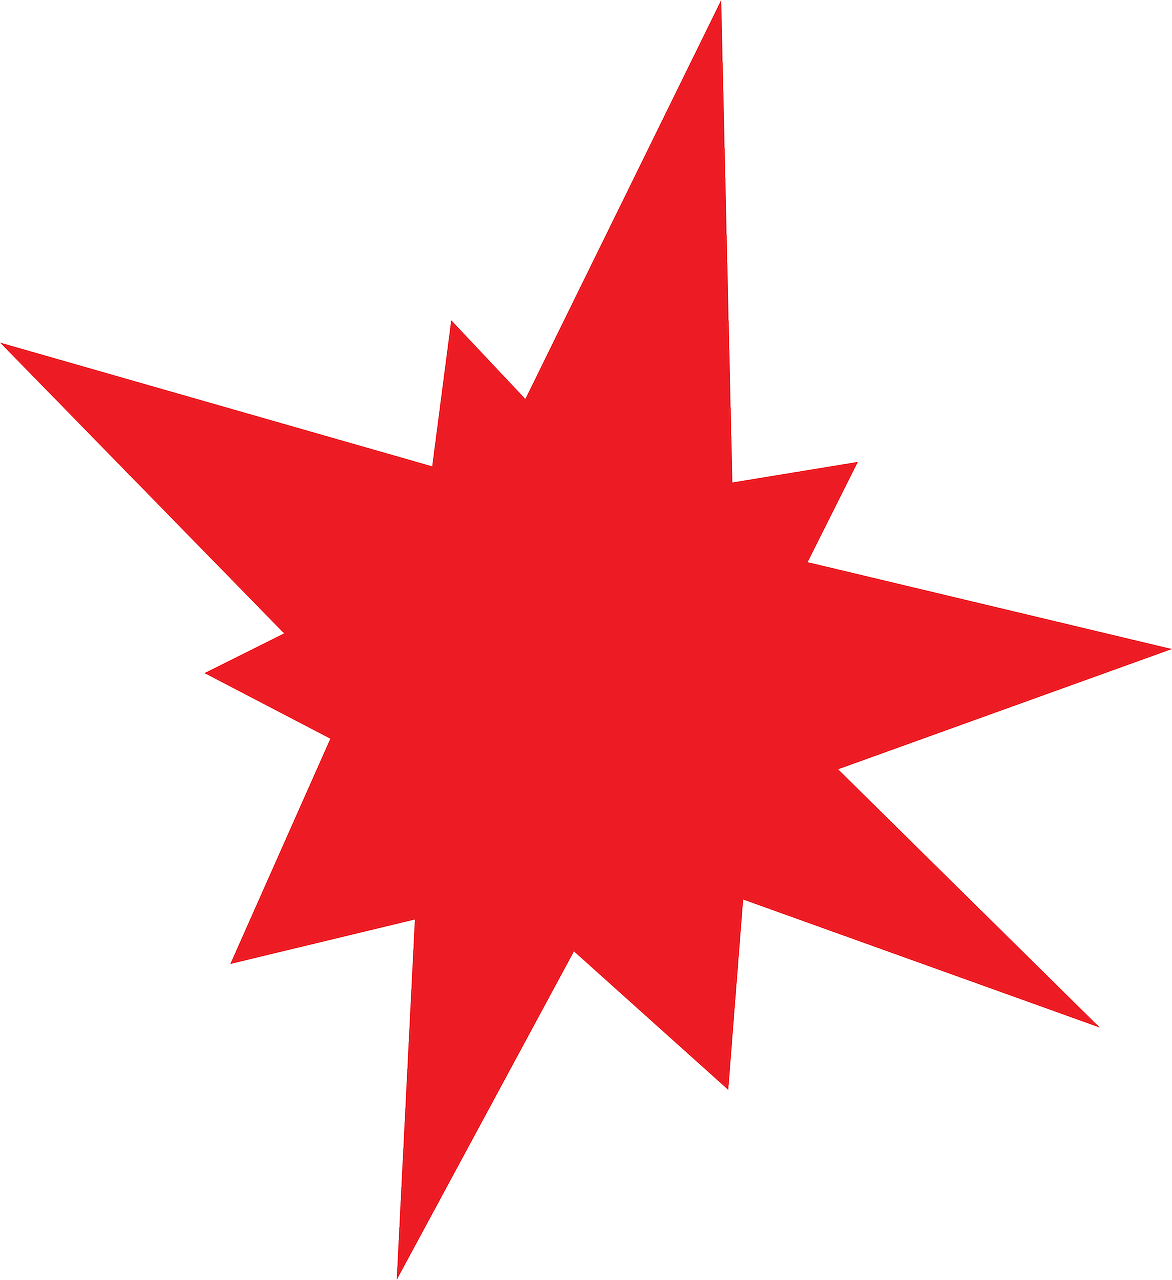 red star asterisk free photo